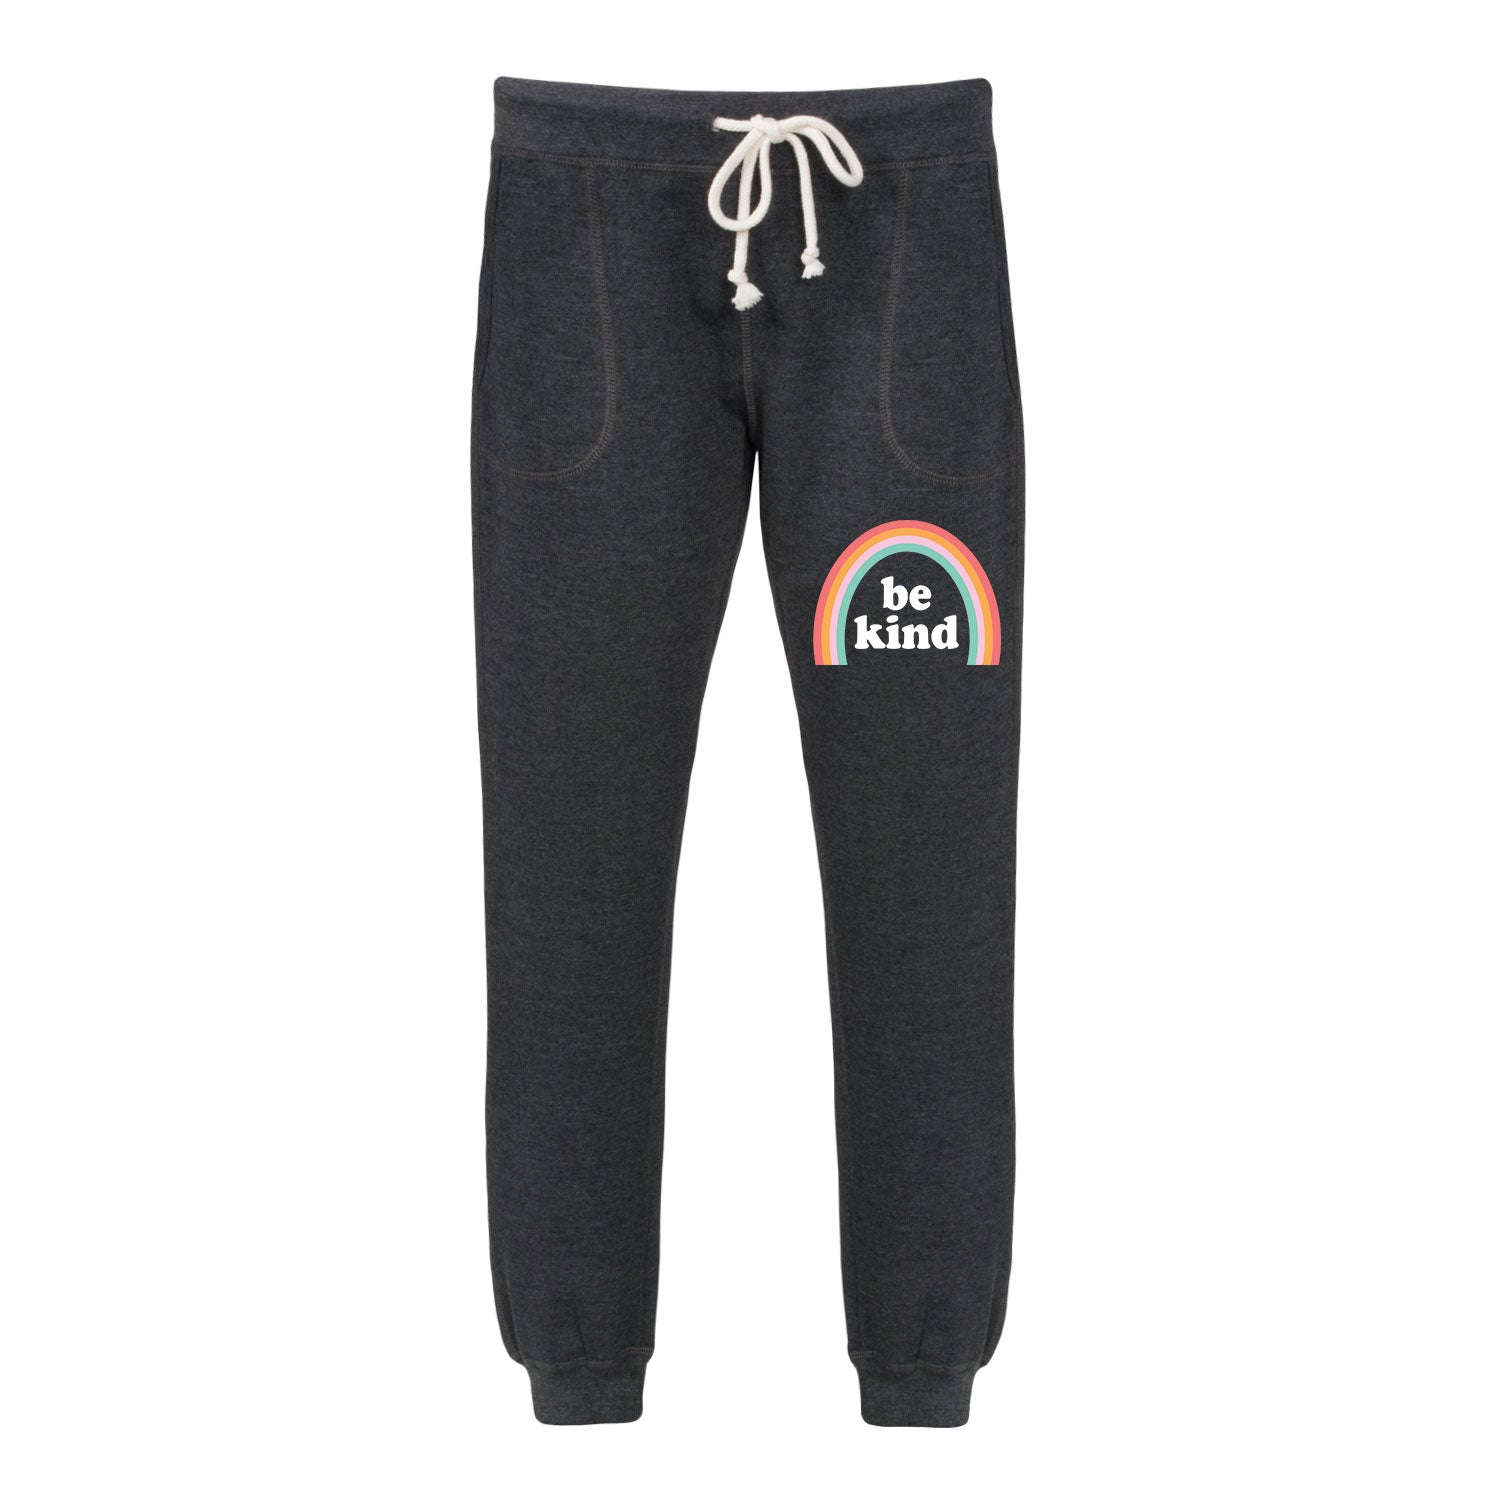 Be Kind - Women's Joggers